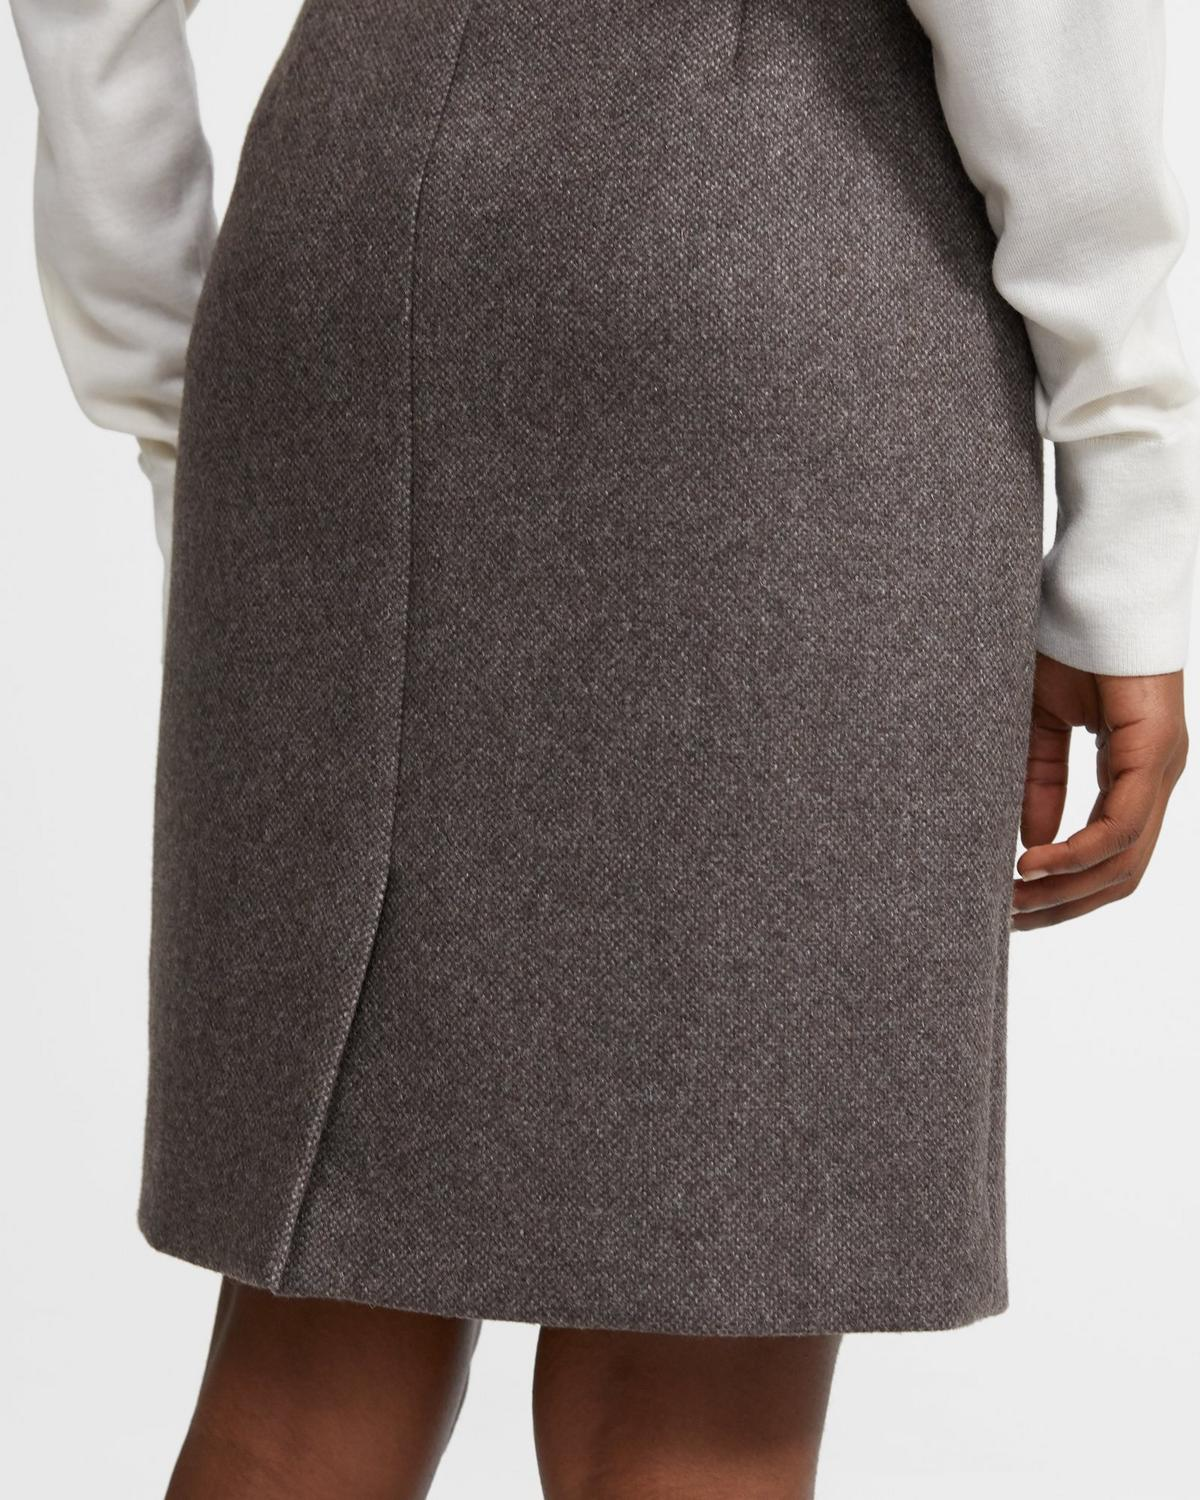 Clean Pencil Skirt in Cashmere Tweed